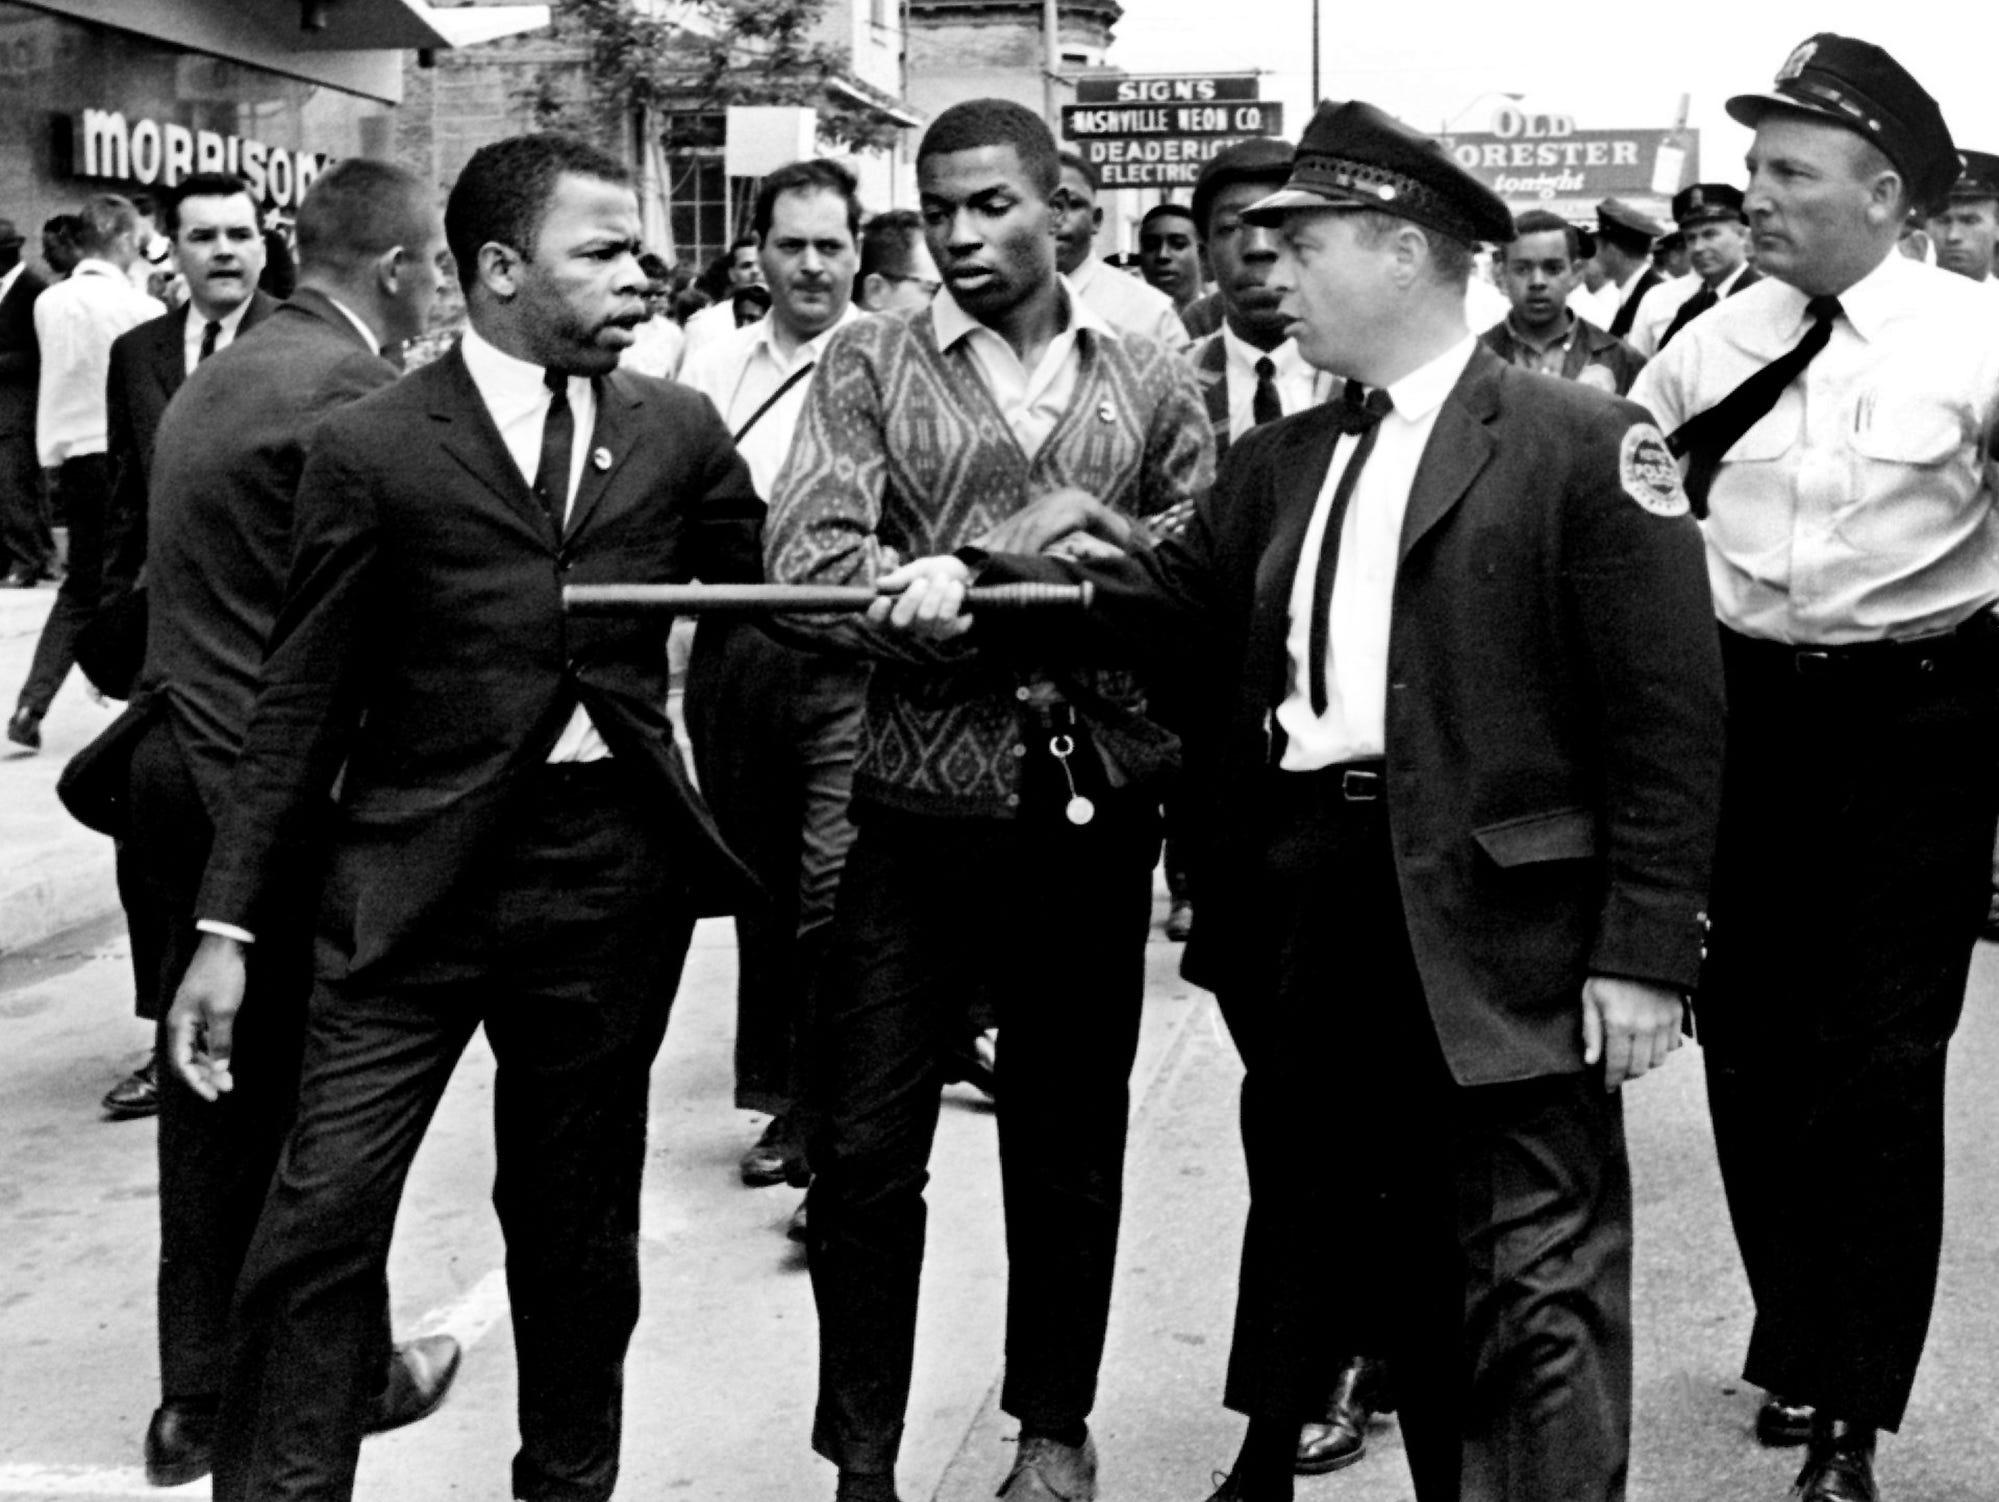 A Metro police officer points his stick at John Lewis, left, one of the leaders of the civil rights demonstrators, at Morrison's Cafeteria on West End Avenue on April 29, 1964.